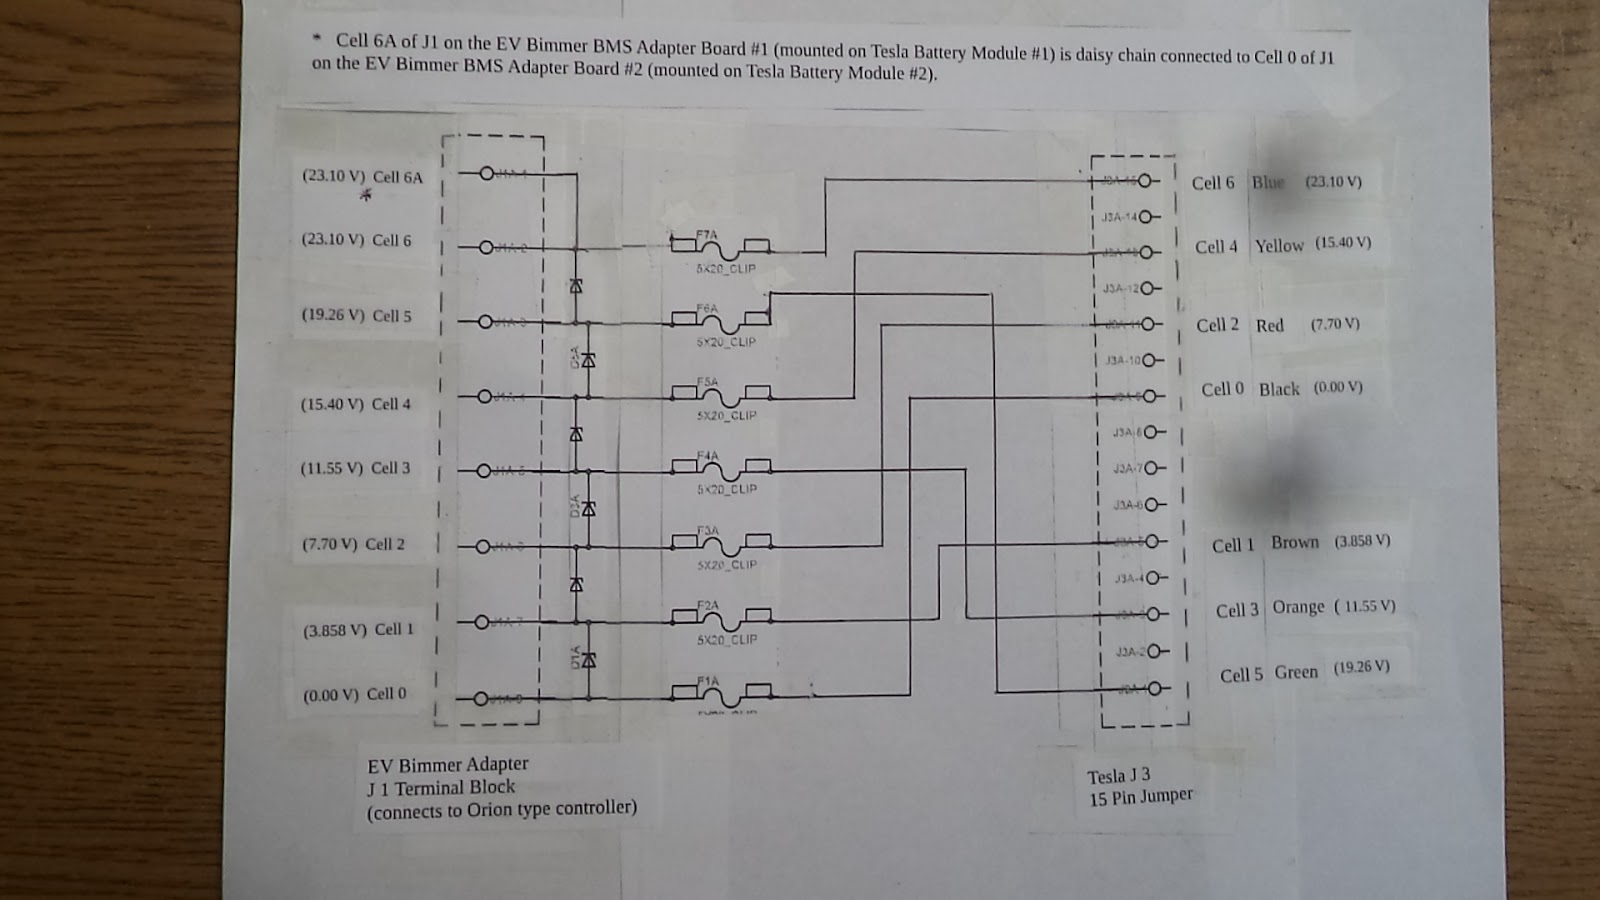 medium resolution of dsc06336 image of the preliminary wiring diagram that connects the orion to tesla module number 1